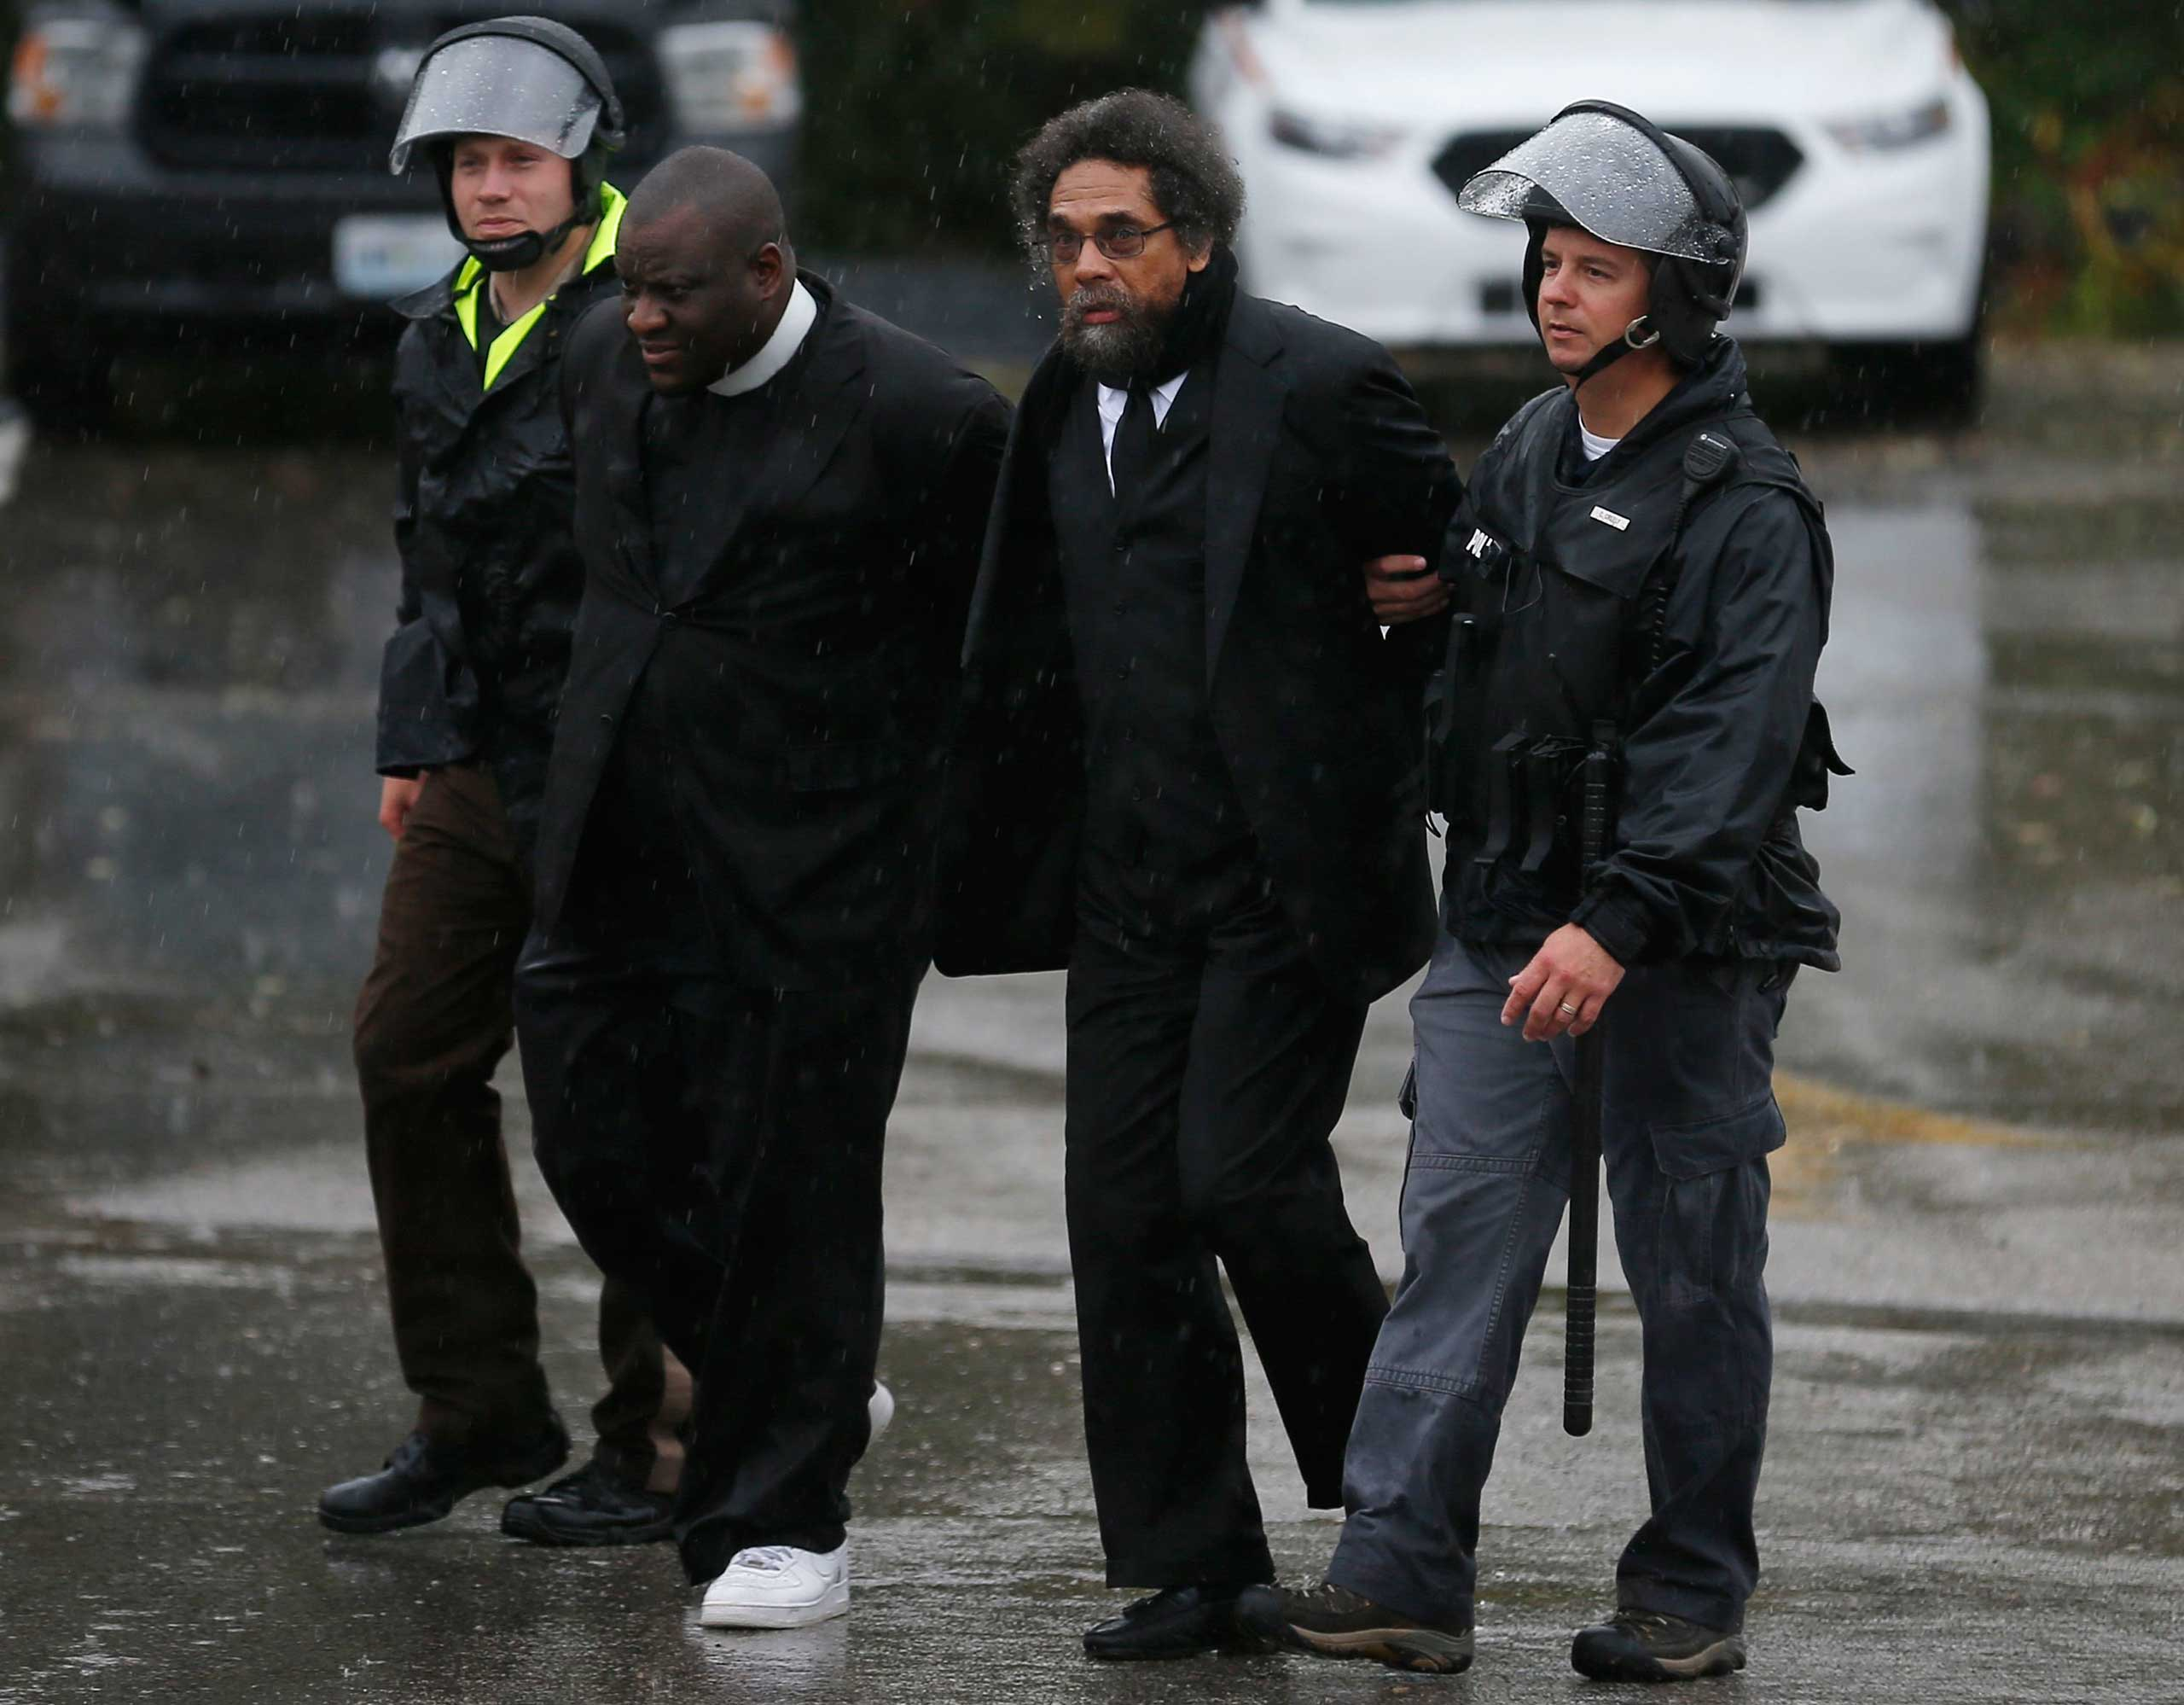 Activist Cornel West (2nd R) is detained by police during a protest at the Ferguson Police Department in Ferguson, Missouri, October 13, 2014.